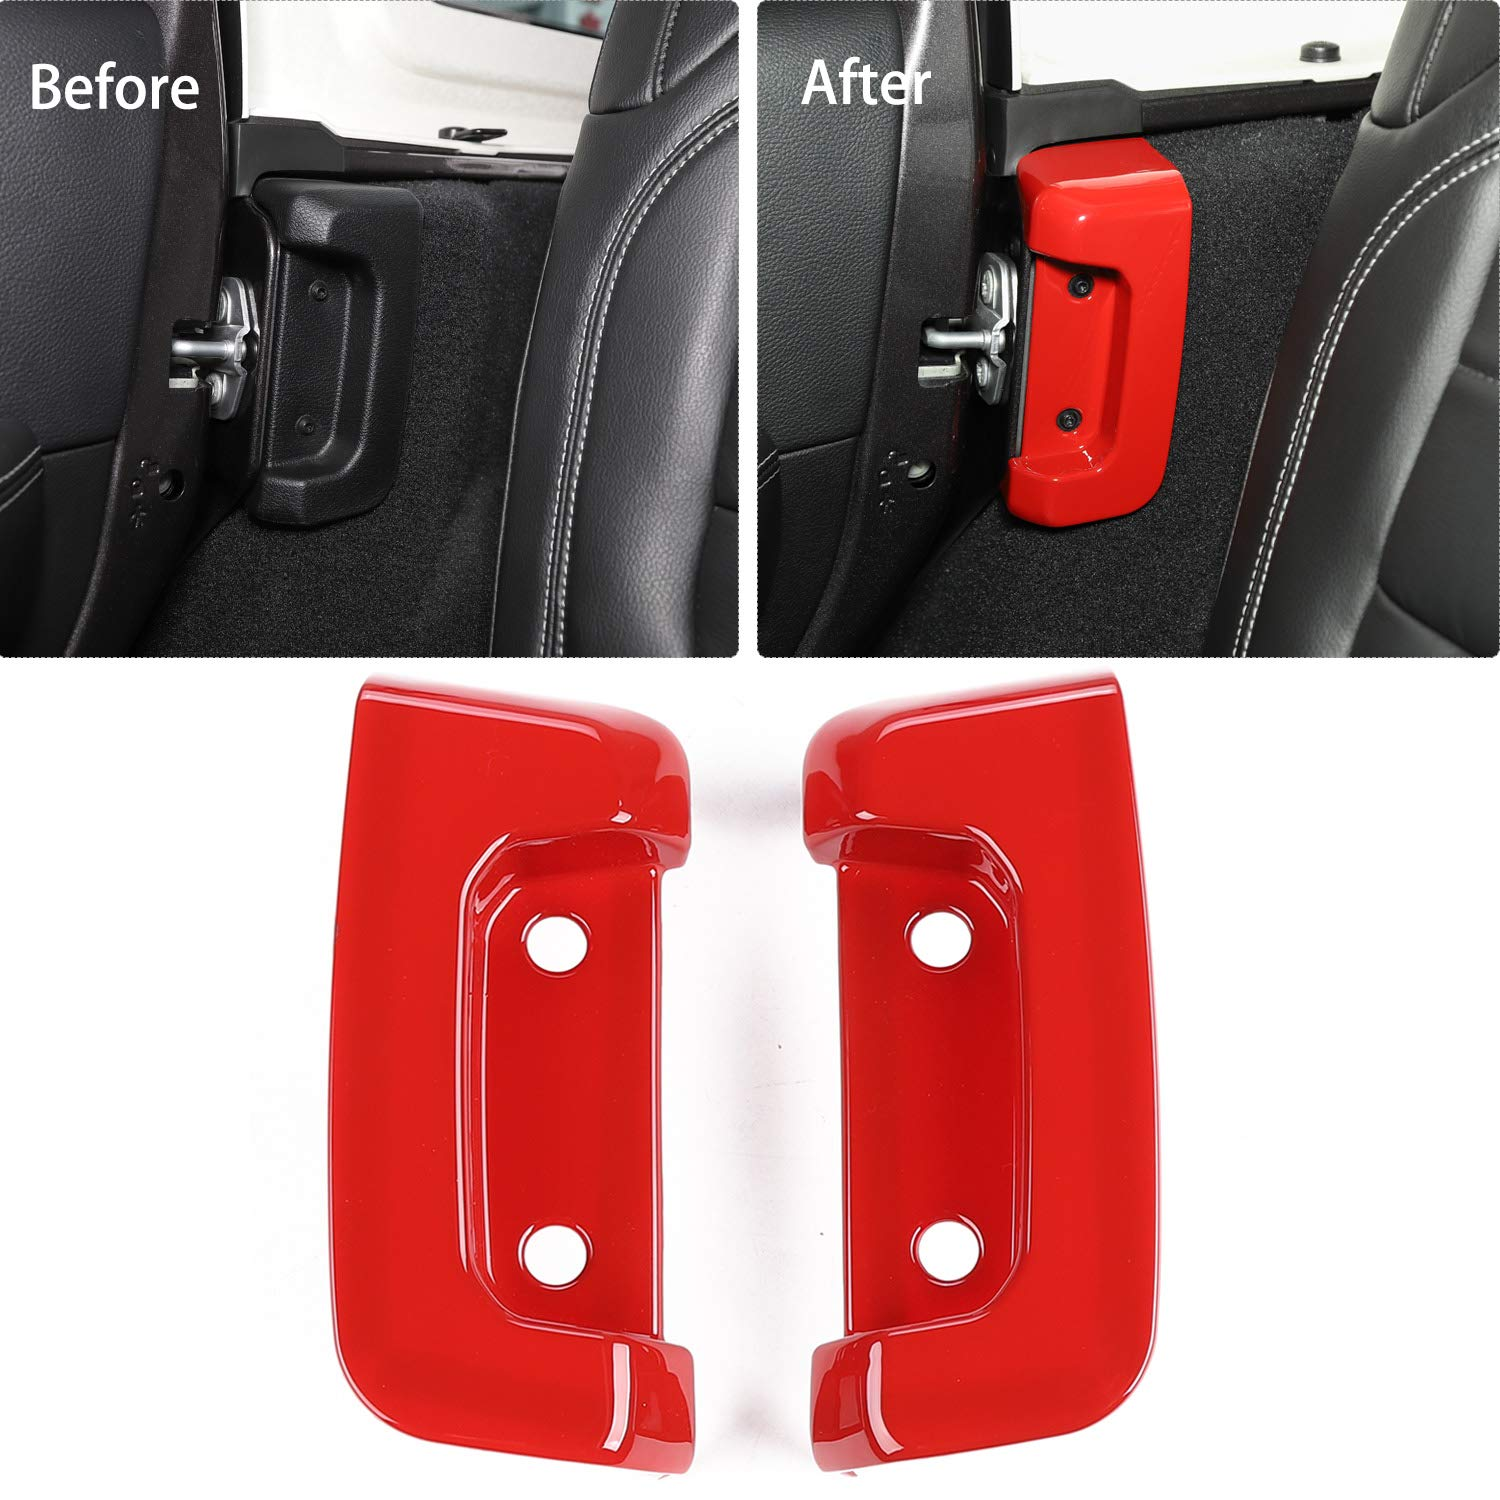 RT-TCZ Rear Gate Lock Cover Interior Decoration Protection Buckle Trim Cover Sticker for 2018-2019 Jeep Wrangler JL//JLU